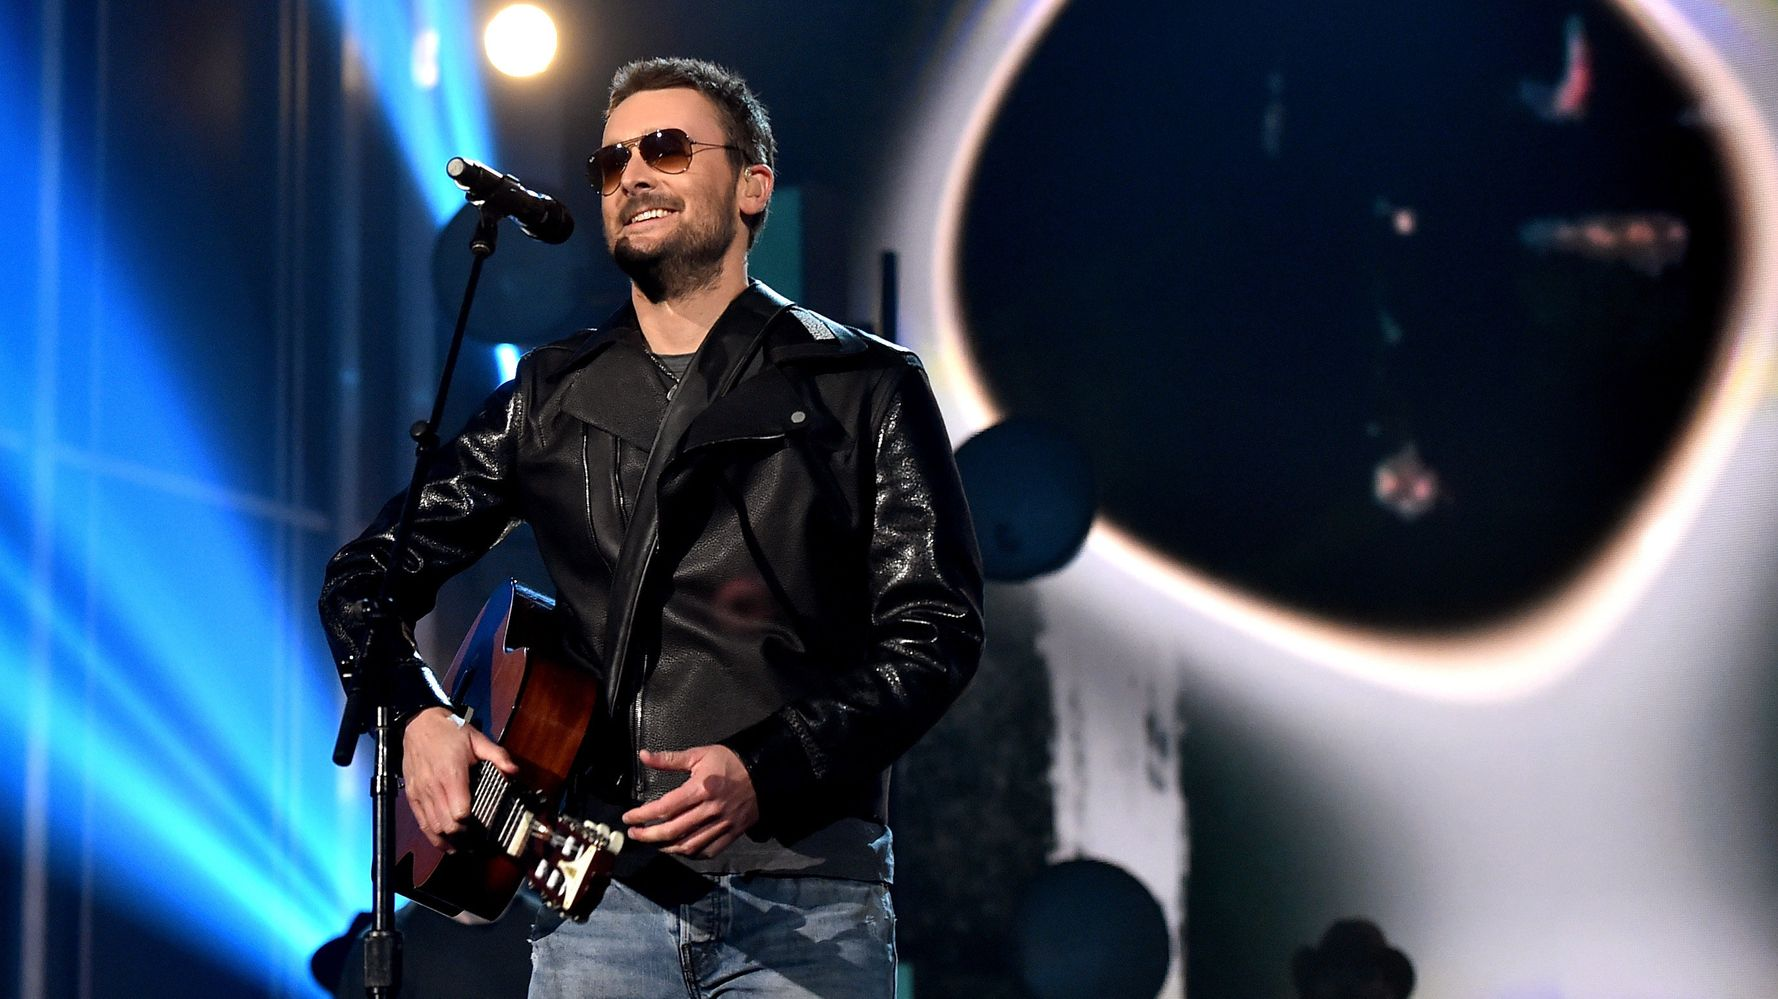 Eric Church Pays Touching Tribute To David Bowie, Scott